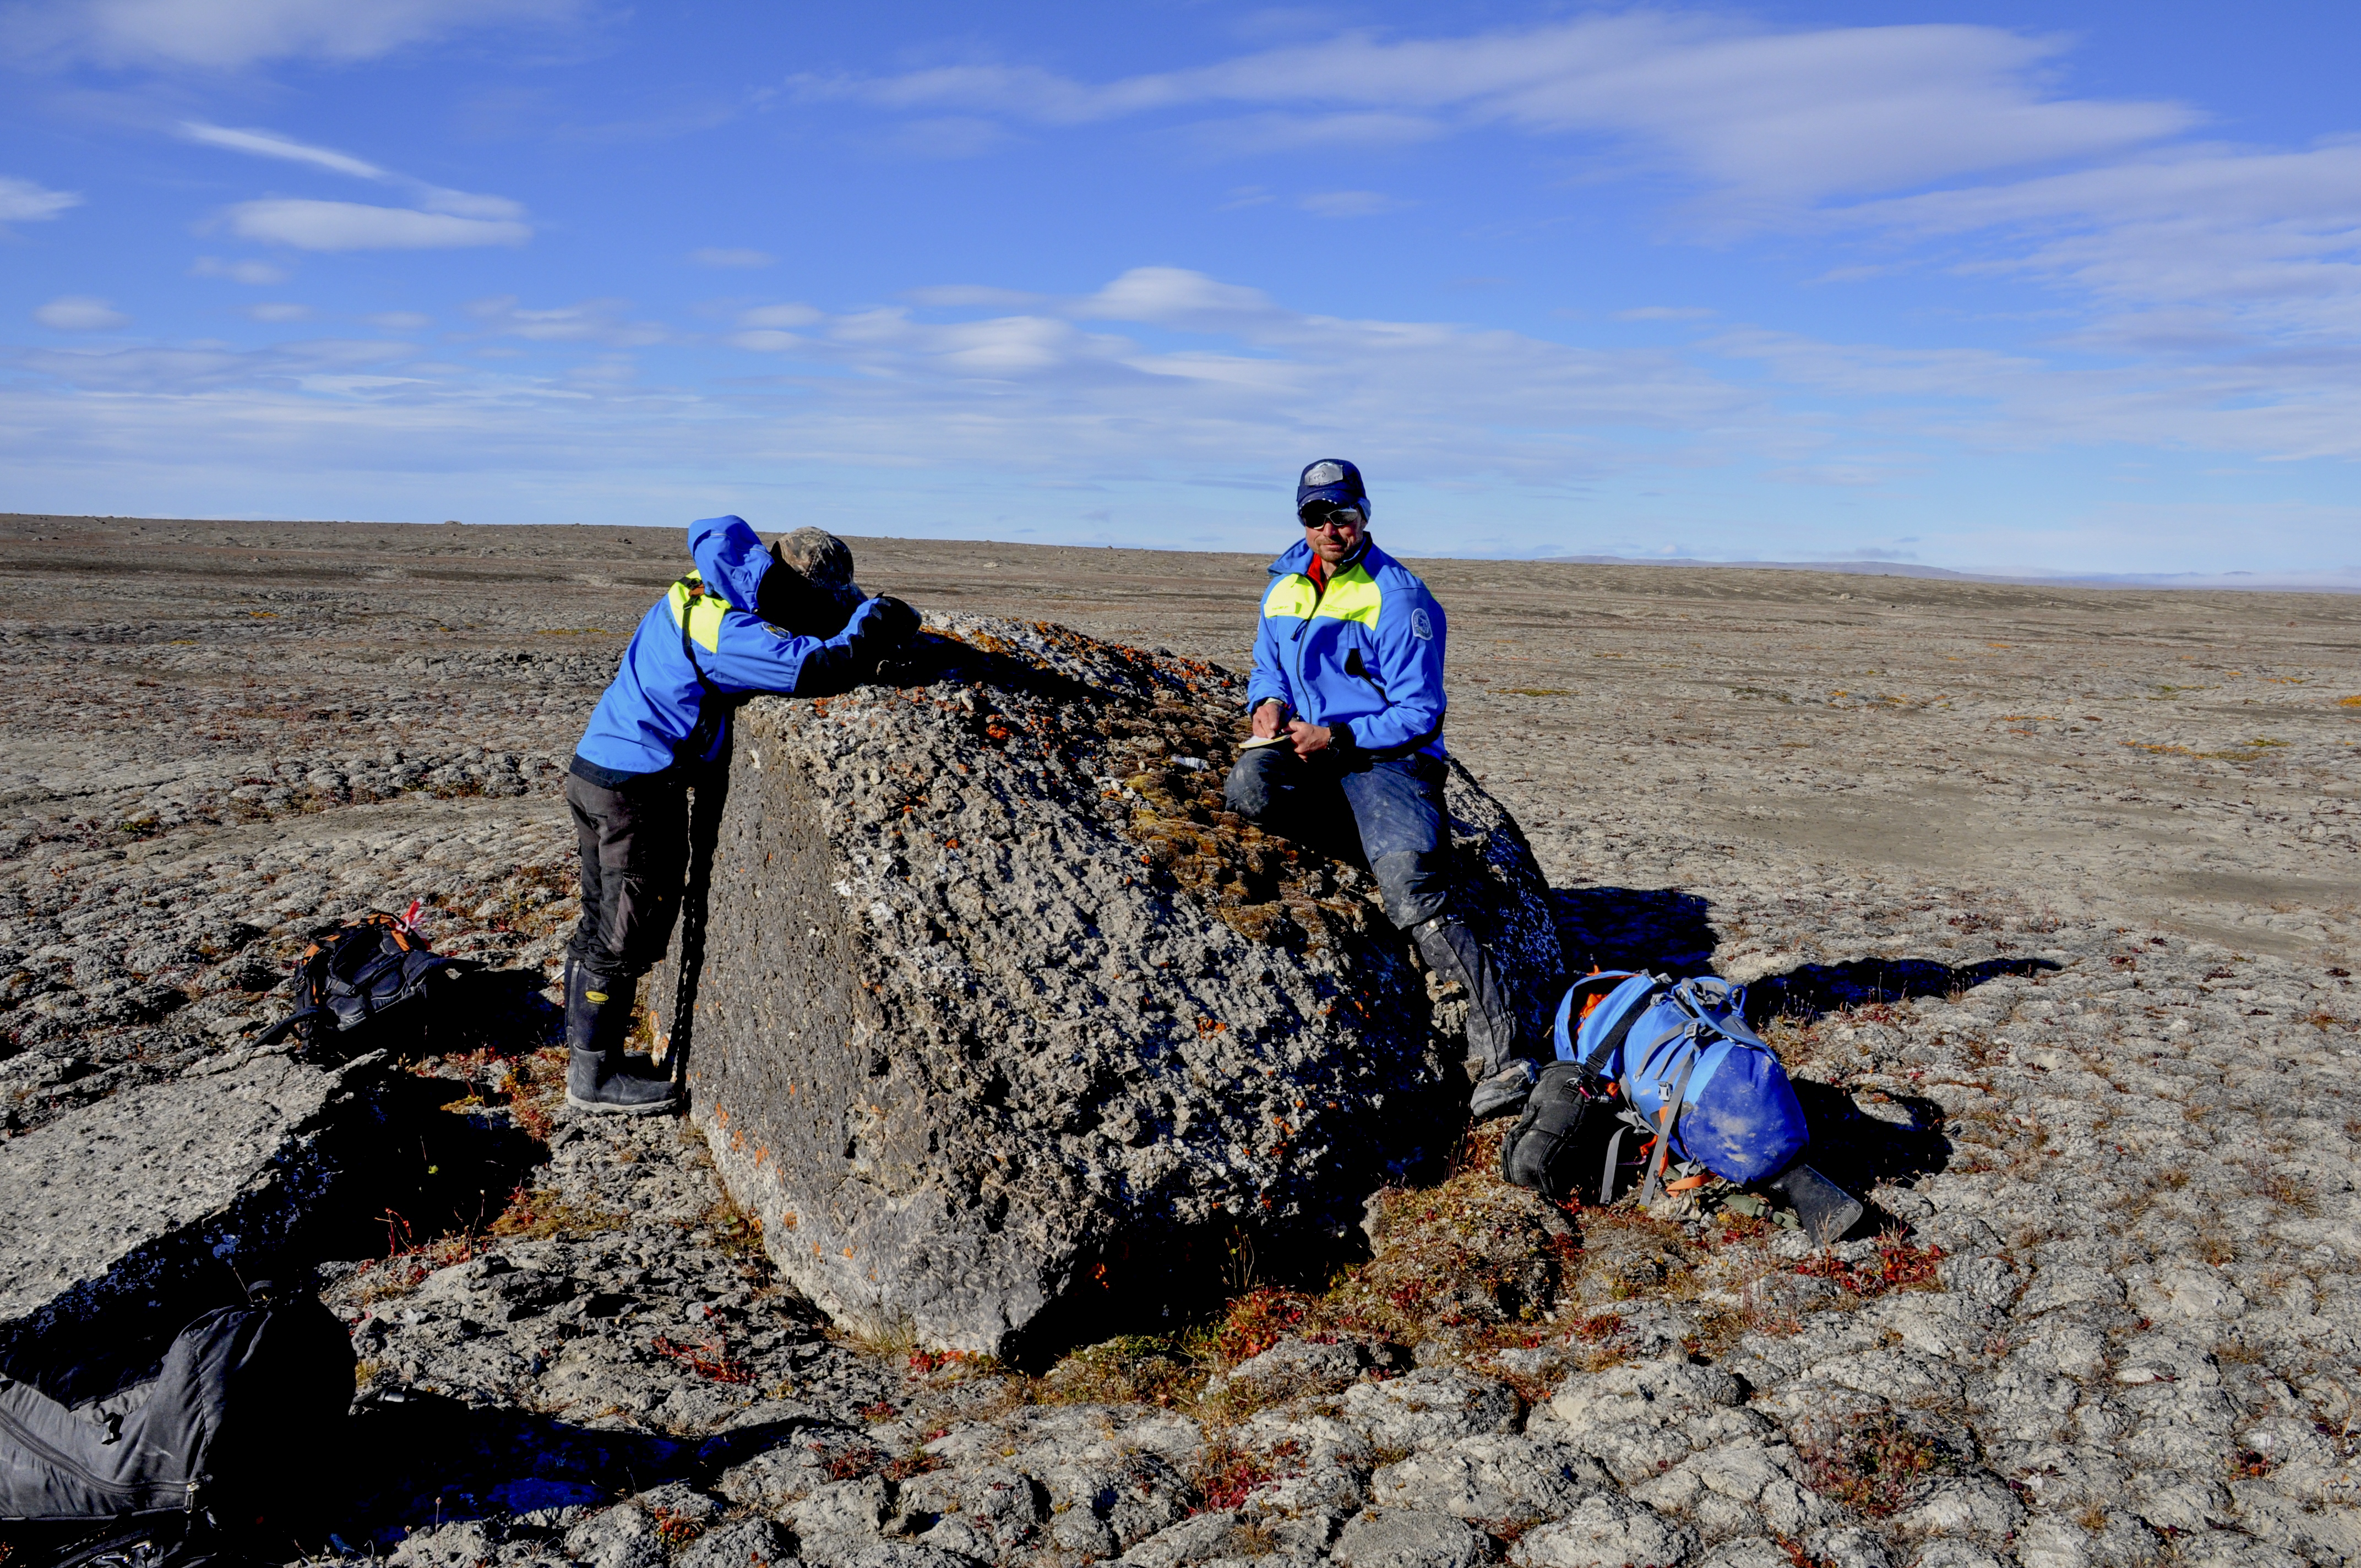 Examining a rock that has traces from a snowy owl. Photo: Åsa Lindgren